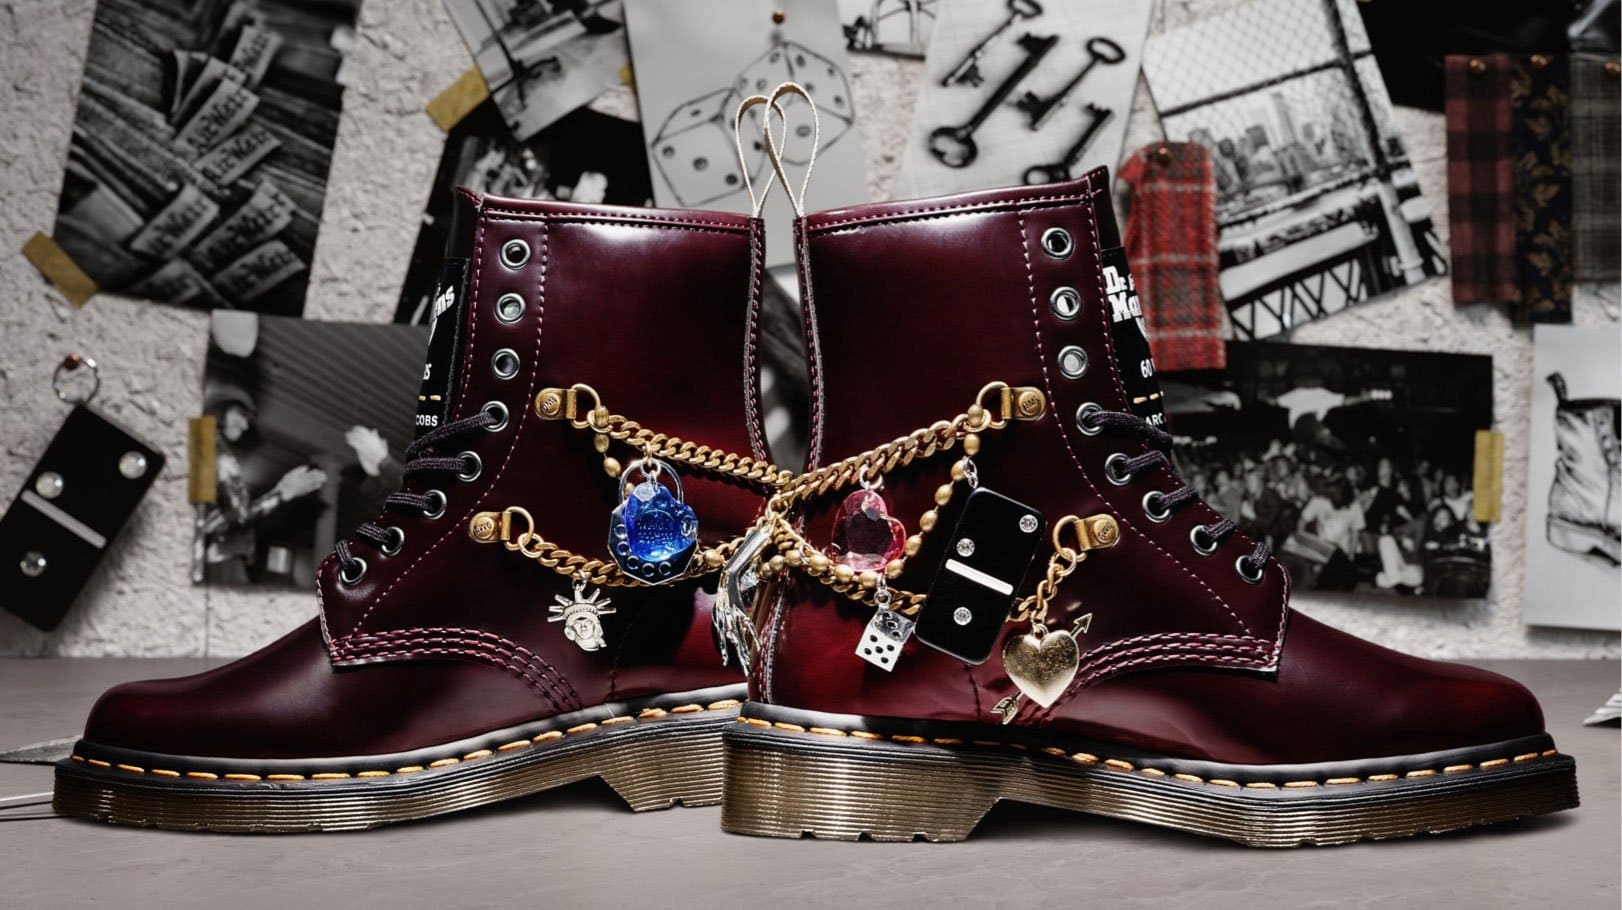 Dr. Martens and Marc Jacobs collaborated to recreate the 1460 Marc Jacobs Boot in honor of the 25th anniversary of the Perry Ellis Spring 1993 fashion show